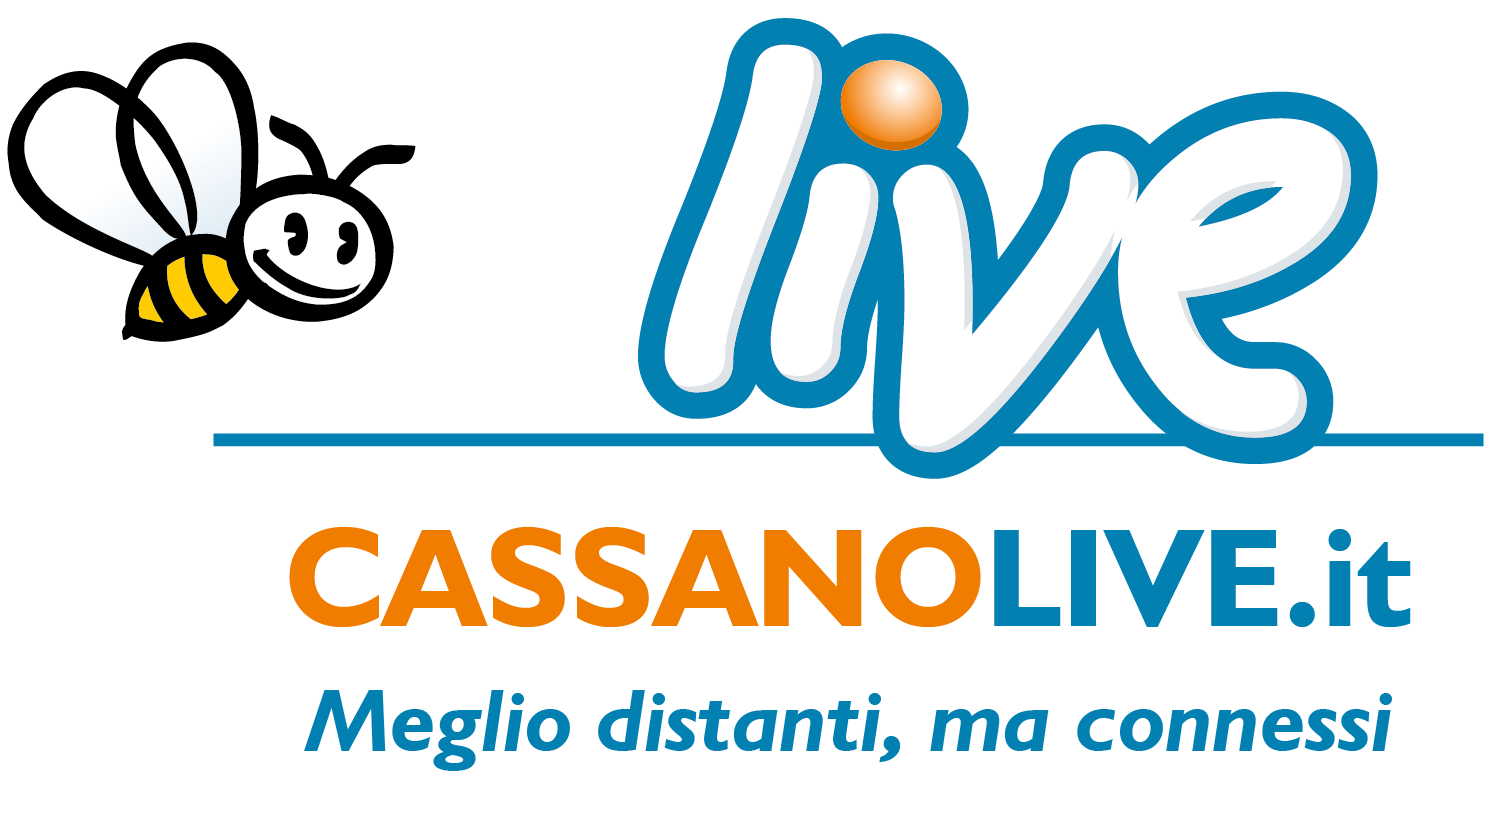 CassanoLive.it